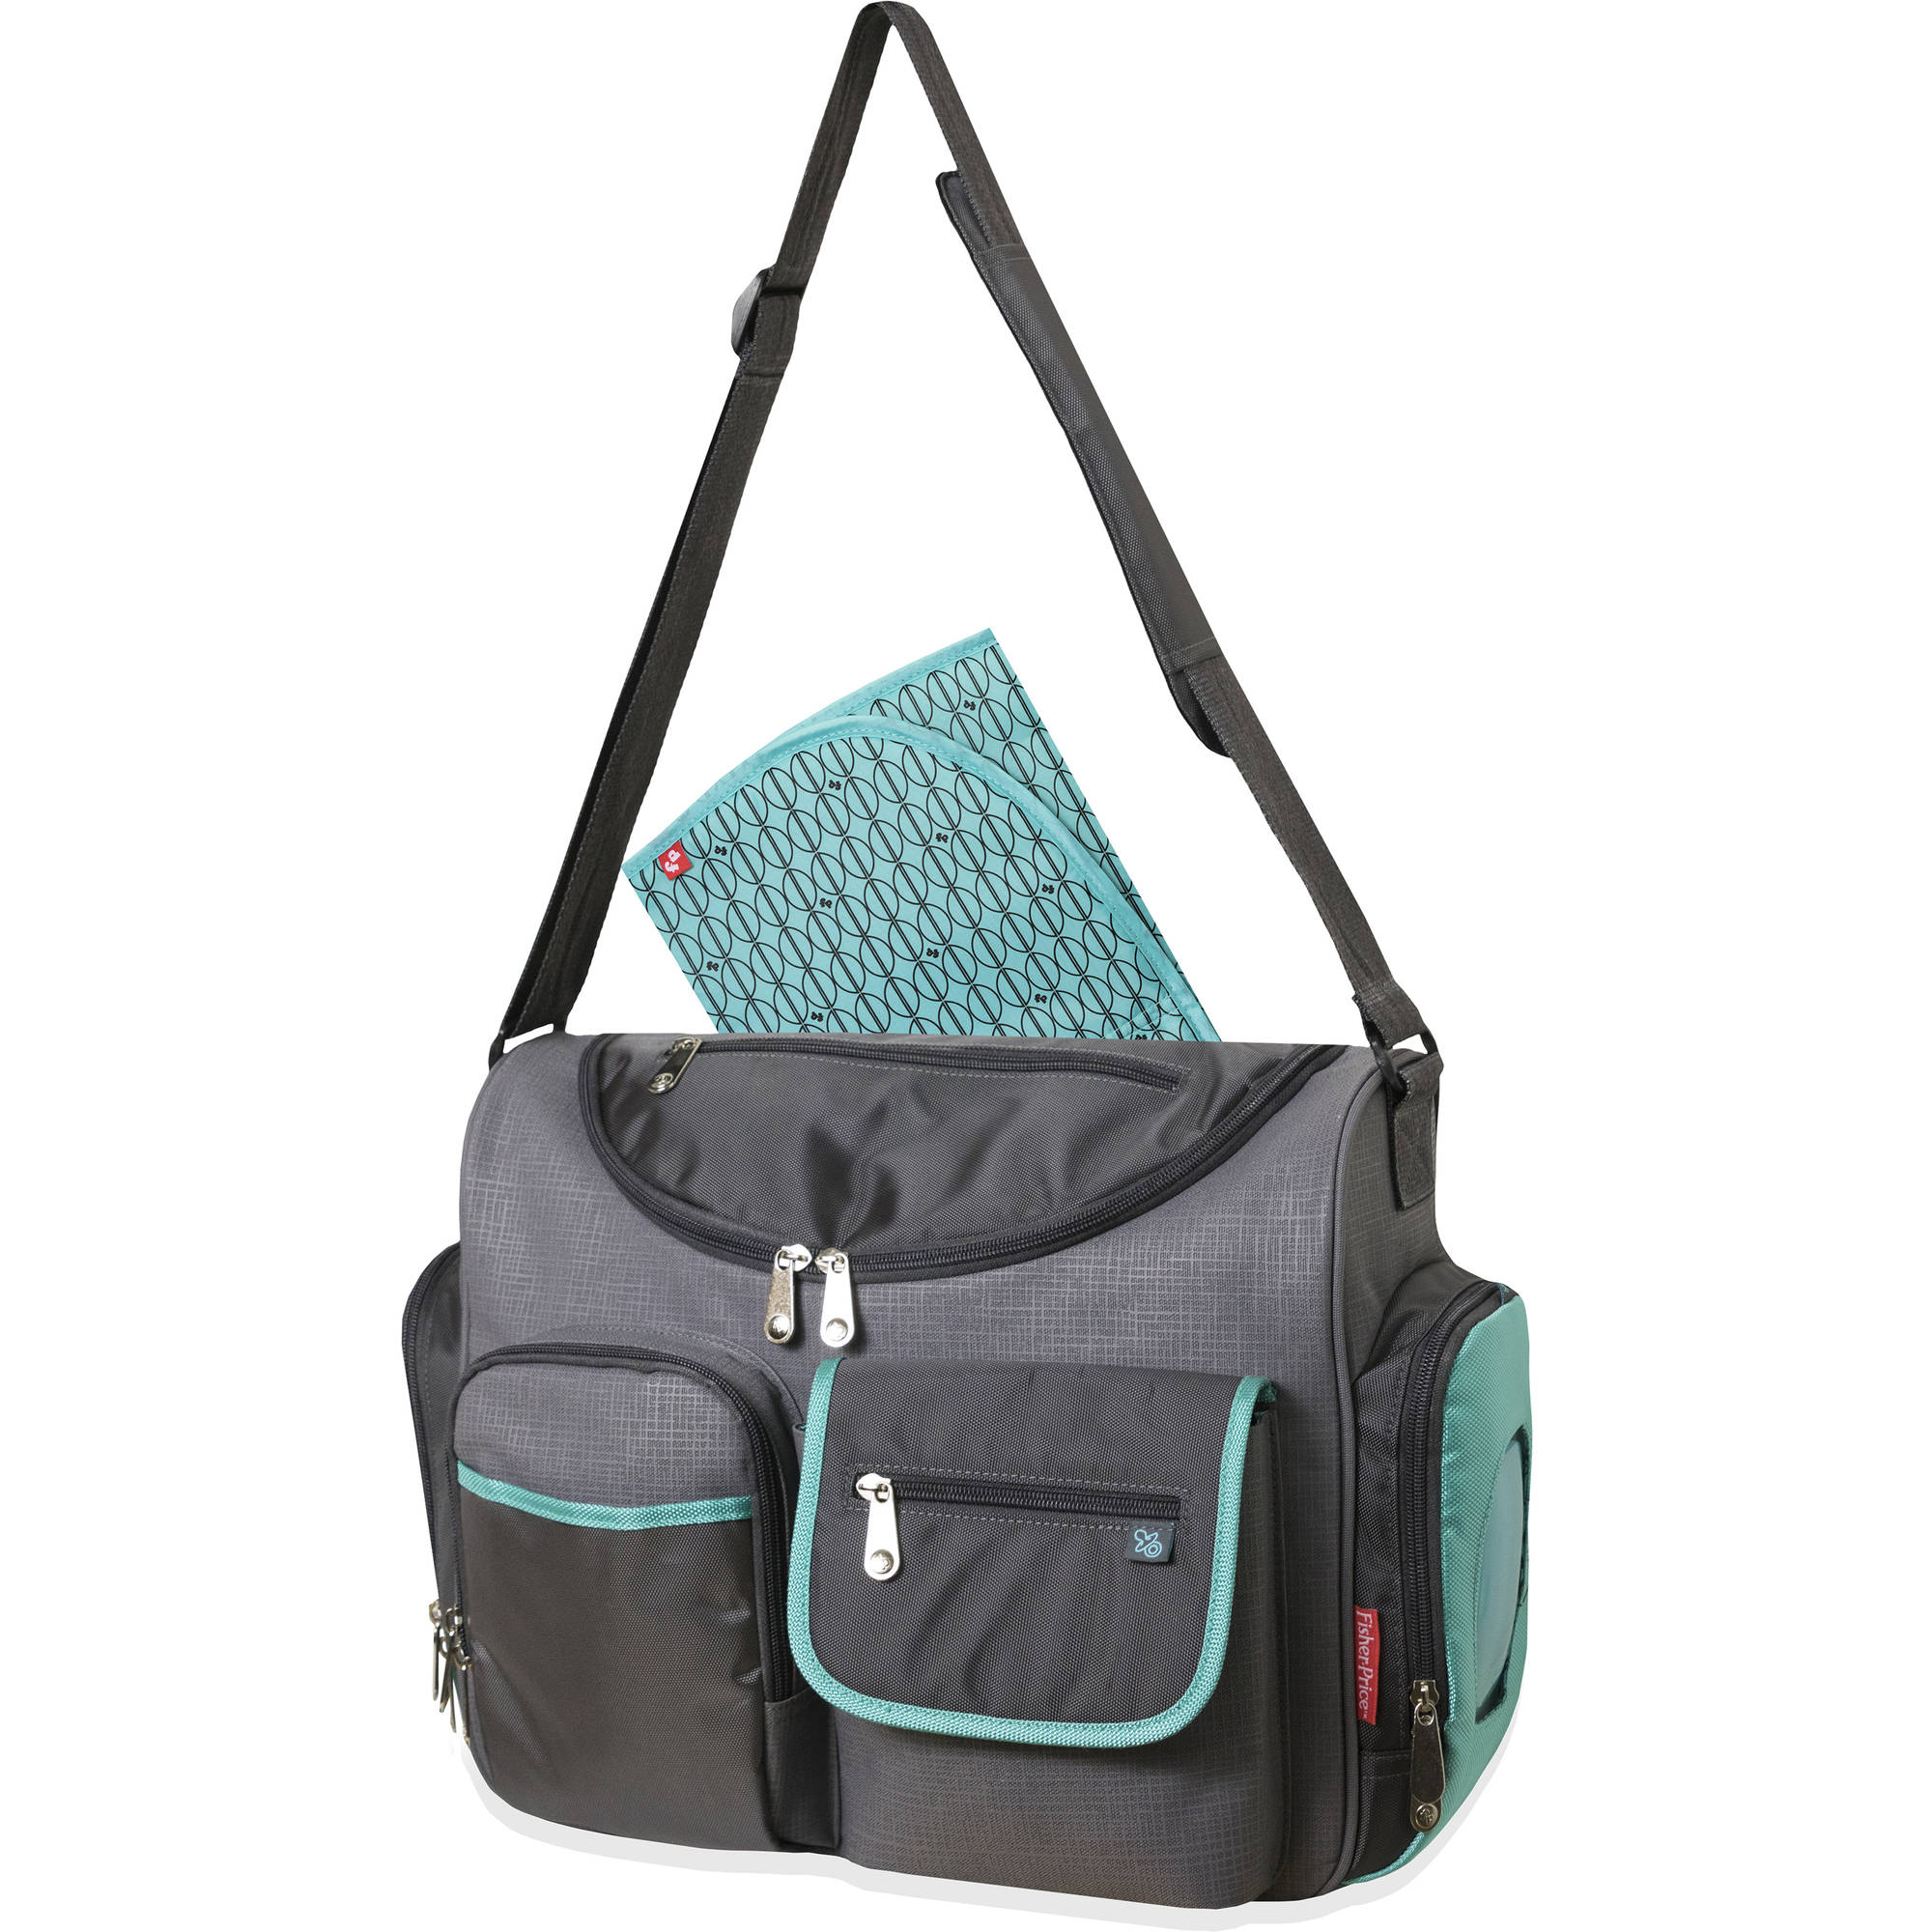 Fisher-Price Gray/Teal Wide Opening Diaper Bag